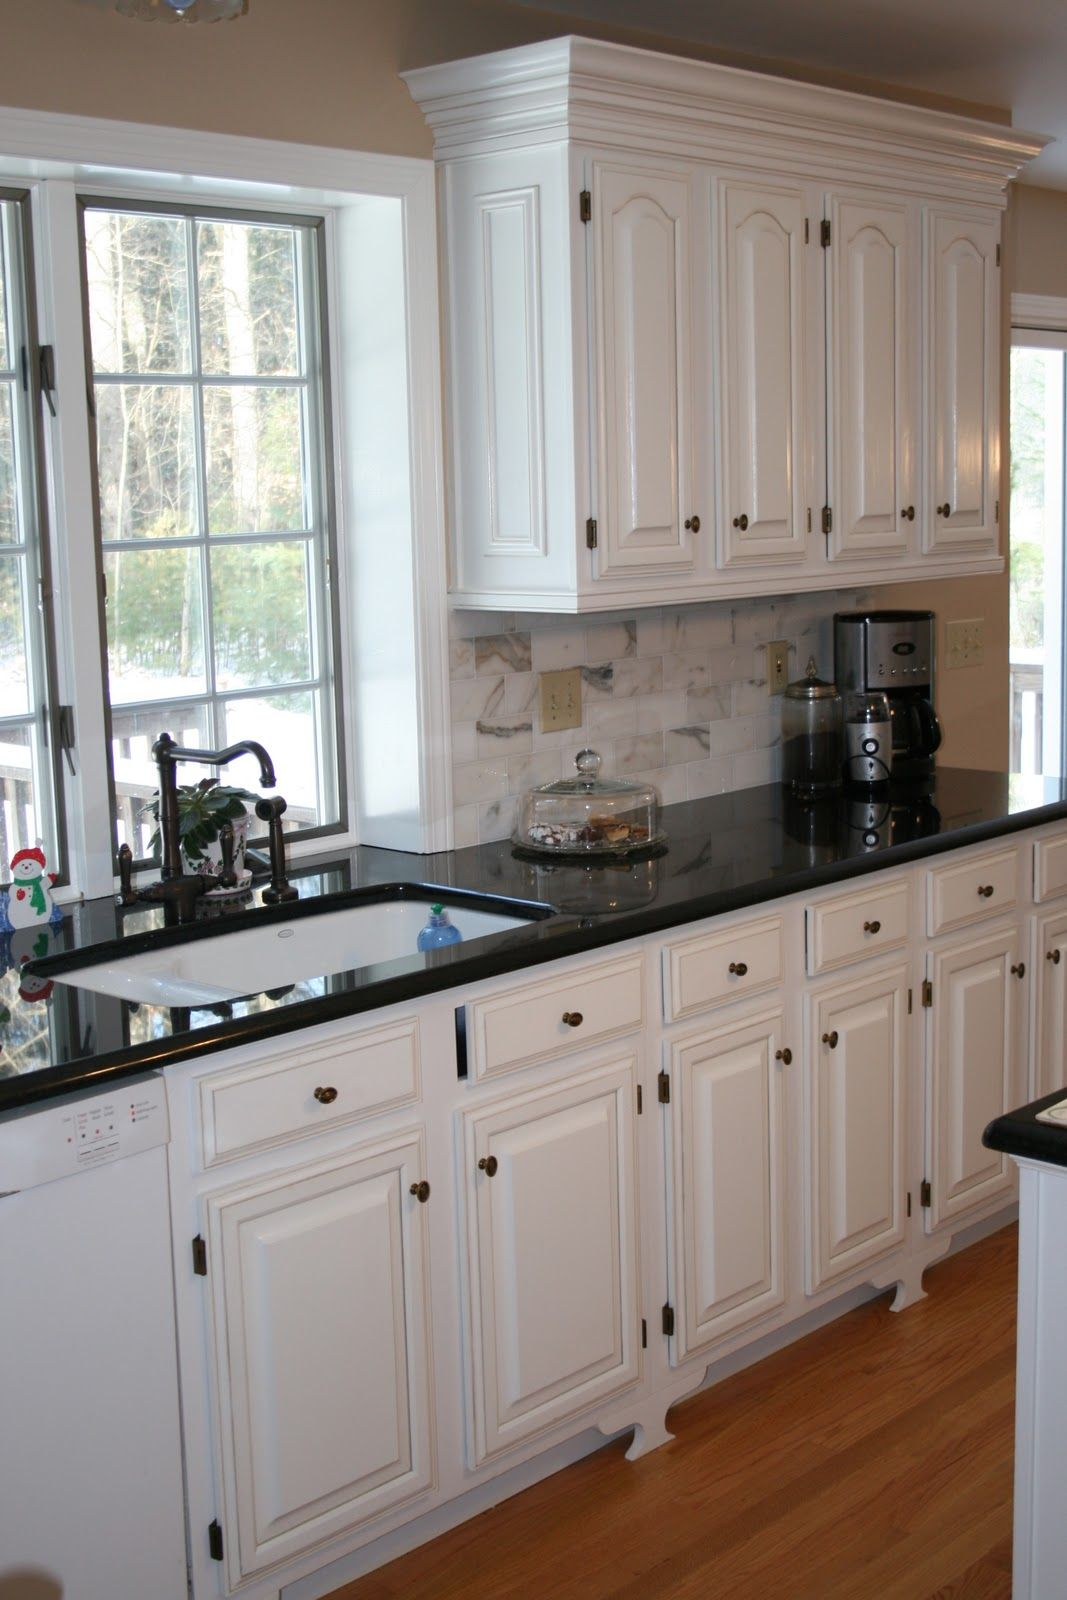 White cabinets black countertops and that faucet | City ...